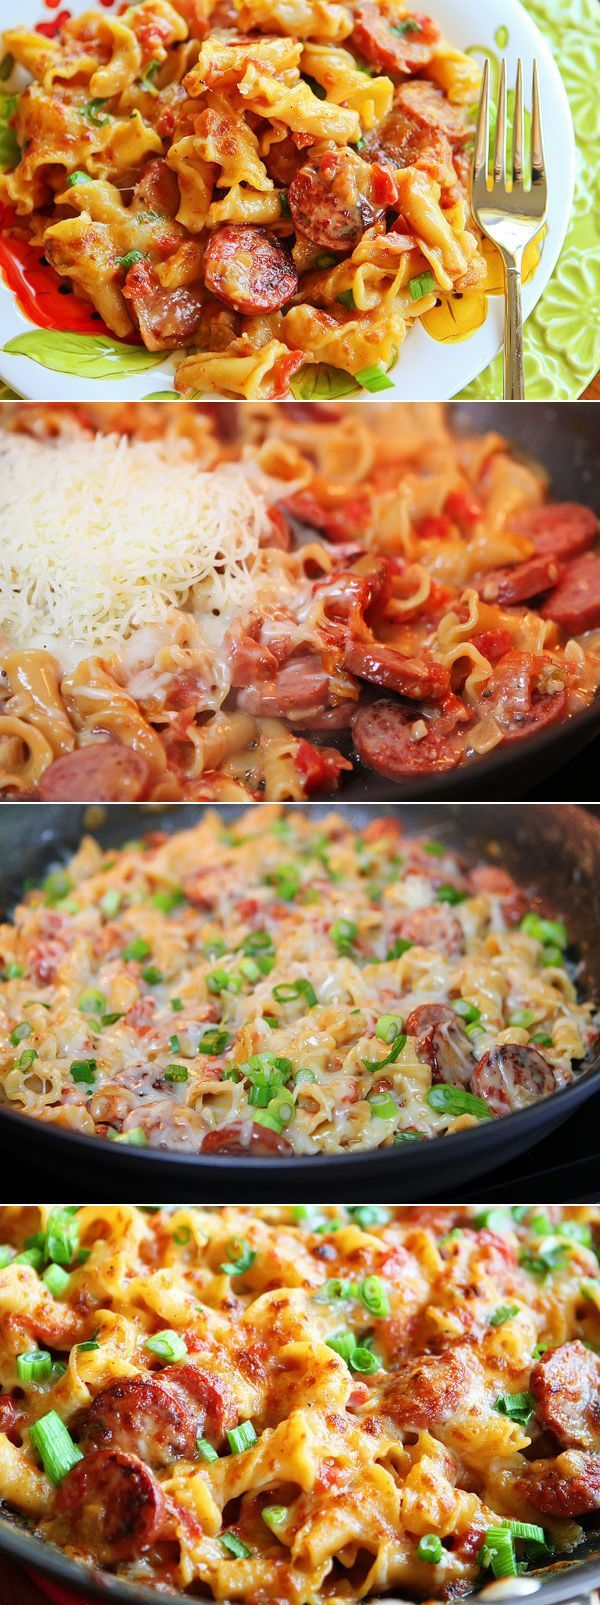 Spicy Sausage Pasta. CLICK FOR RECIPE  #FOOD #DELICIOUS #RECIPE